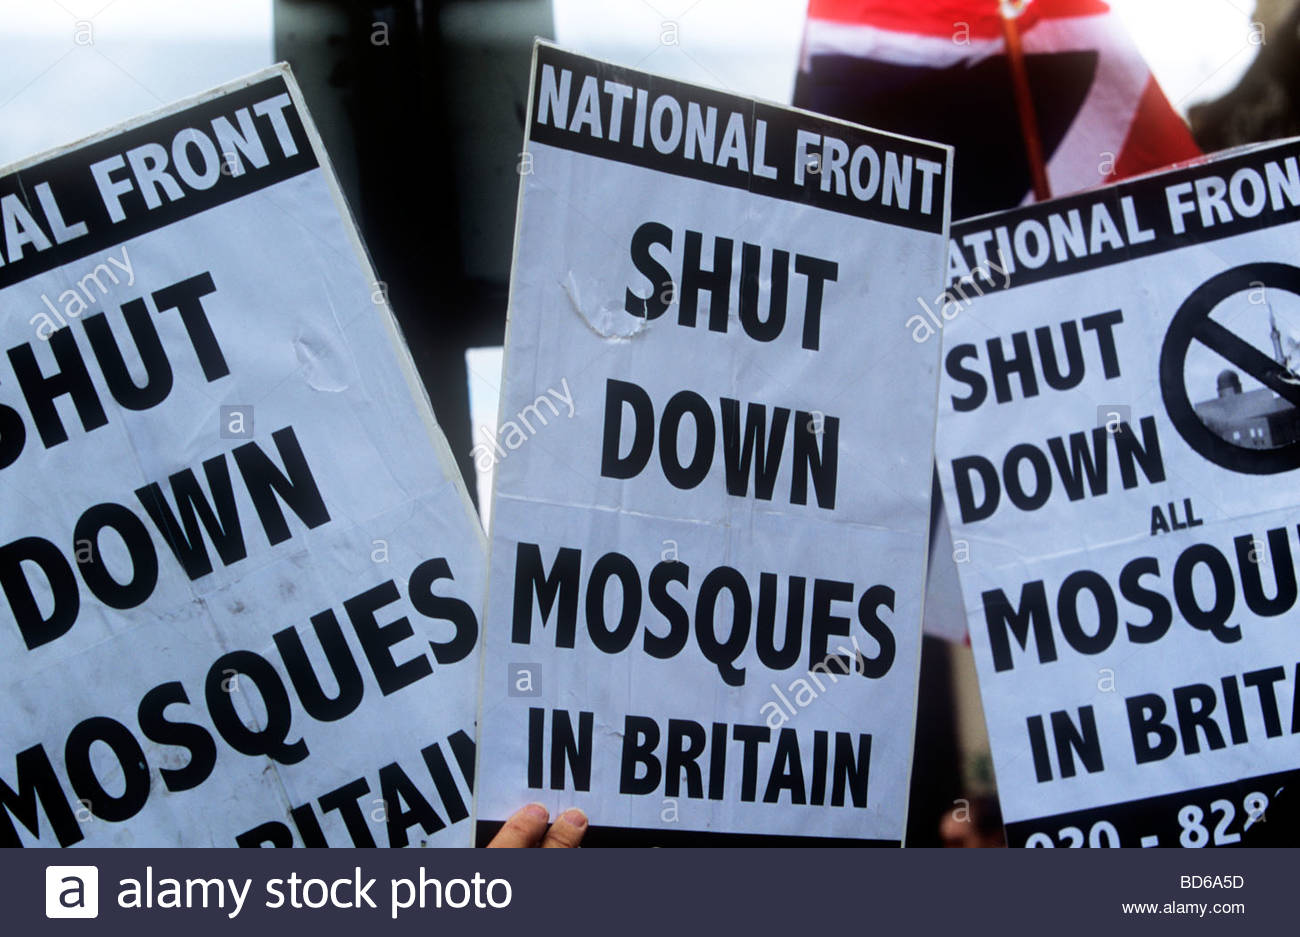 Demonstration by the National Front against Islam London - Stock Image